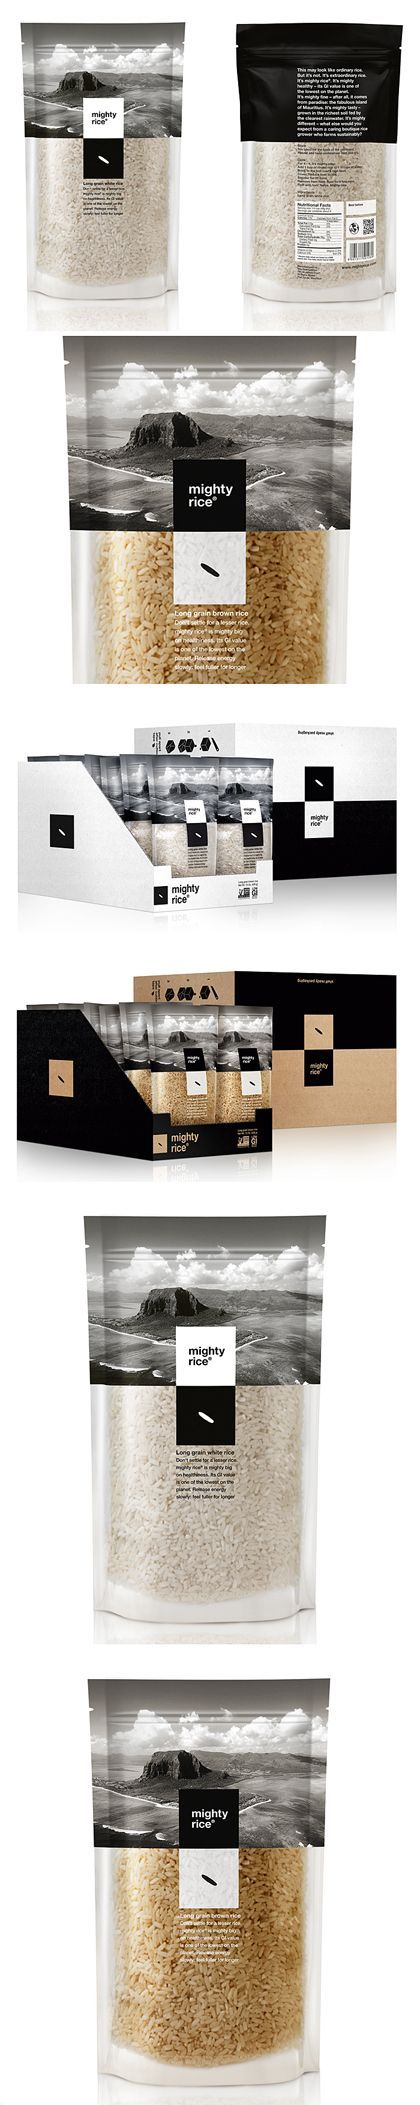 Mighty Rice : Simple, Duo-chromatic Packaging. I have never seen rice packaged like this before 0.0 I love the black and white design, and the size. Each packet for me would last about a week, so I like that each packet should be fresh: